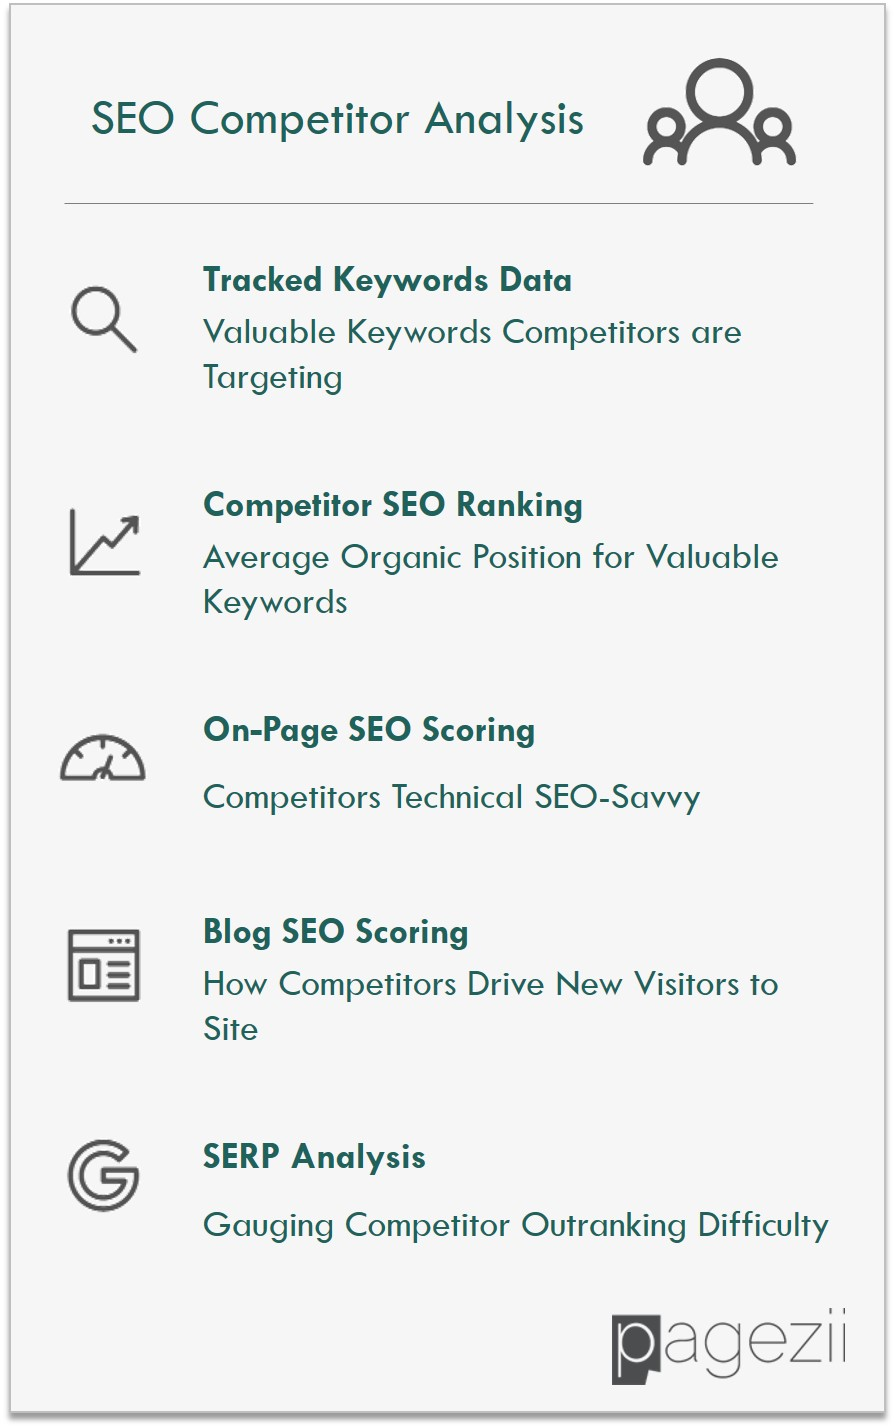 SEO Competitor Analysis Template for SEO Managers – Competitors Analysis Template